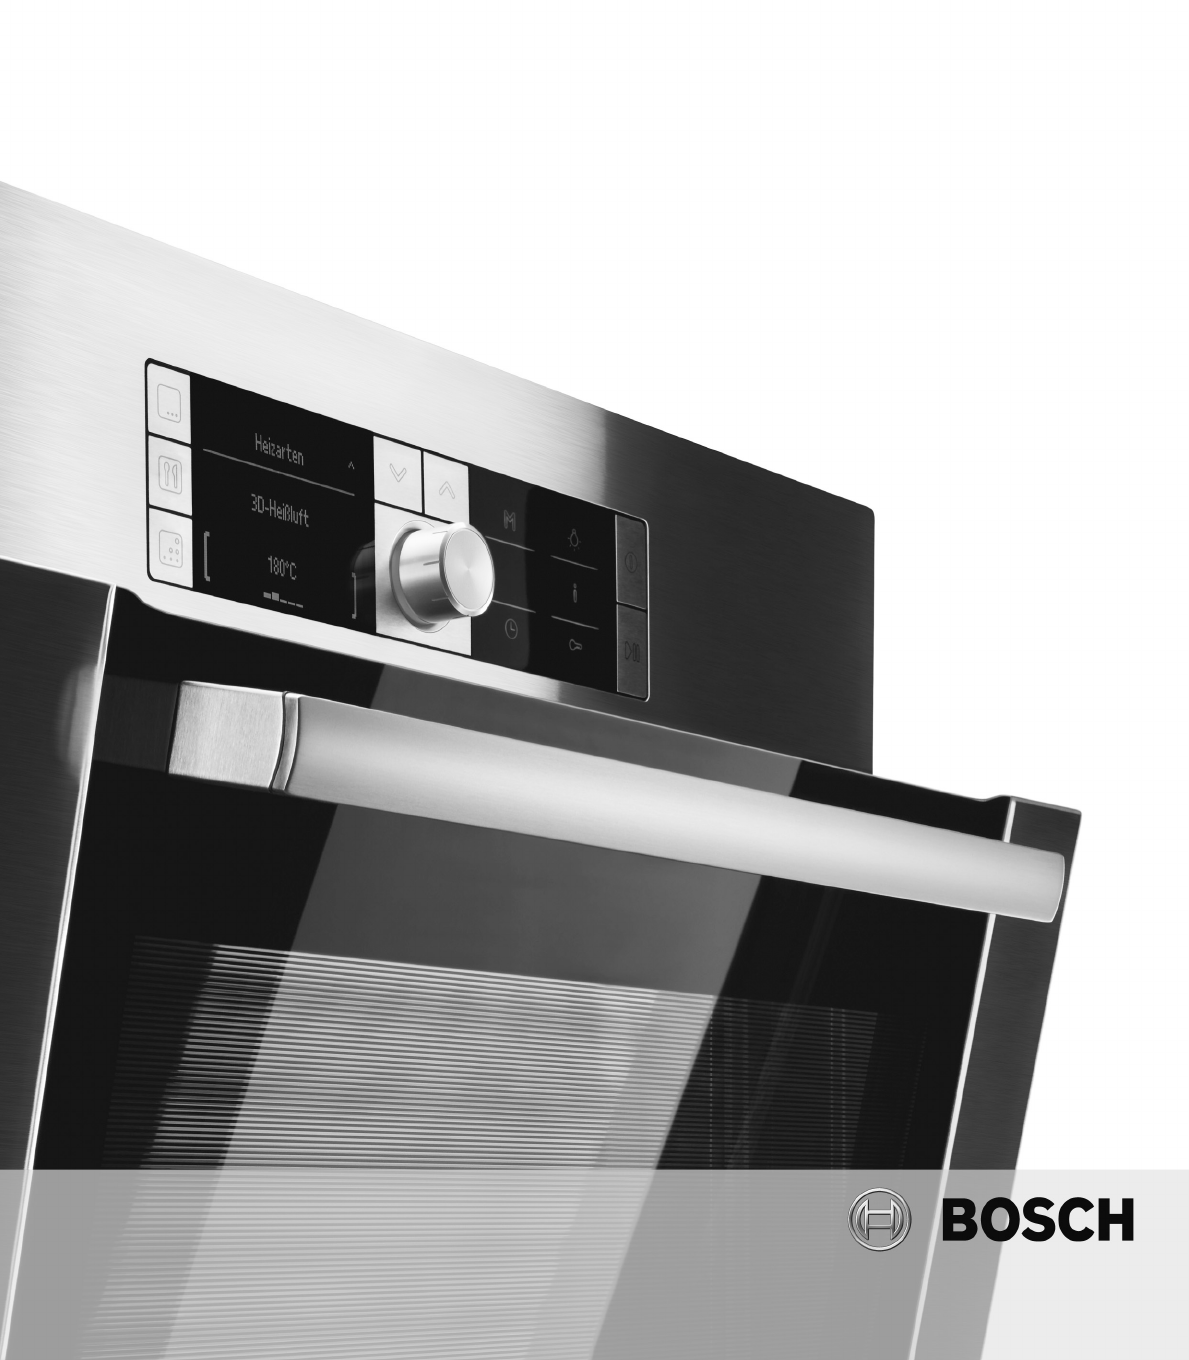 Manual Bosch Hbc84h500 Page 1 Of 24